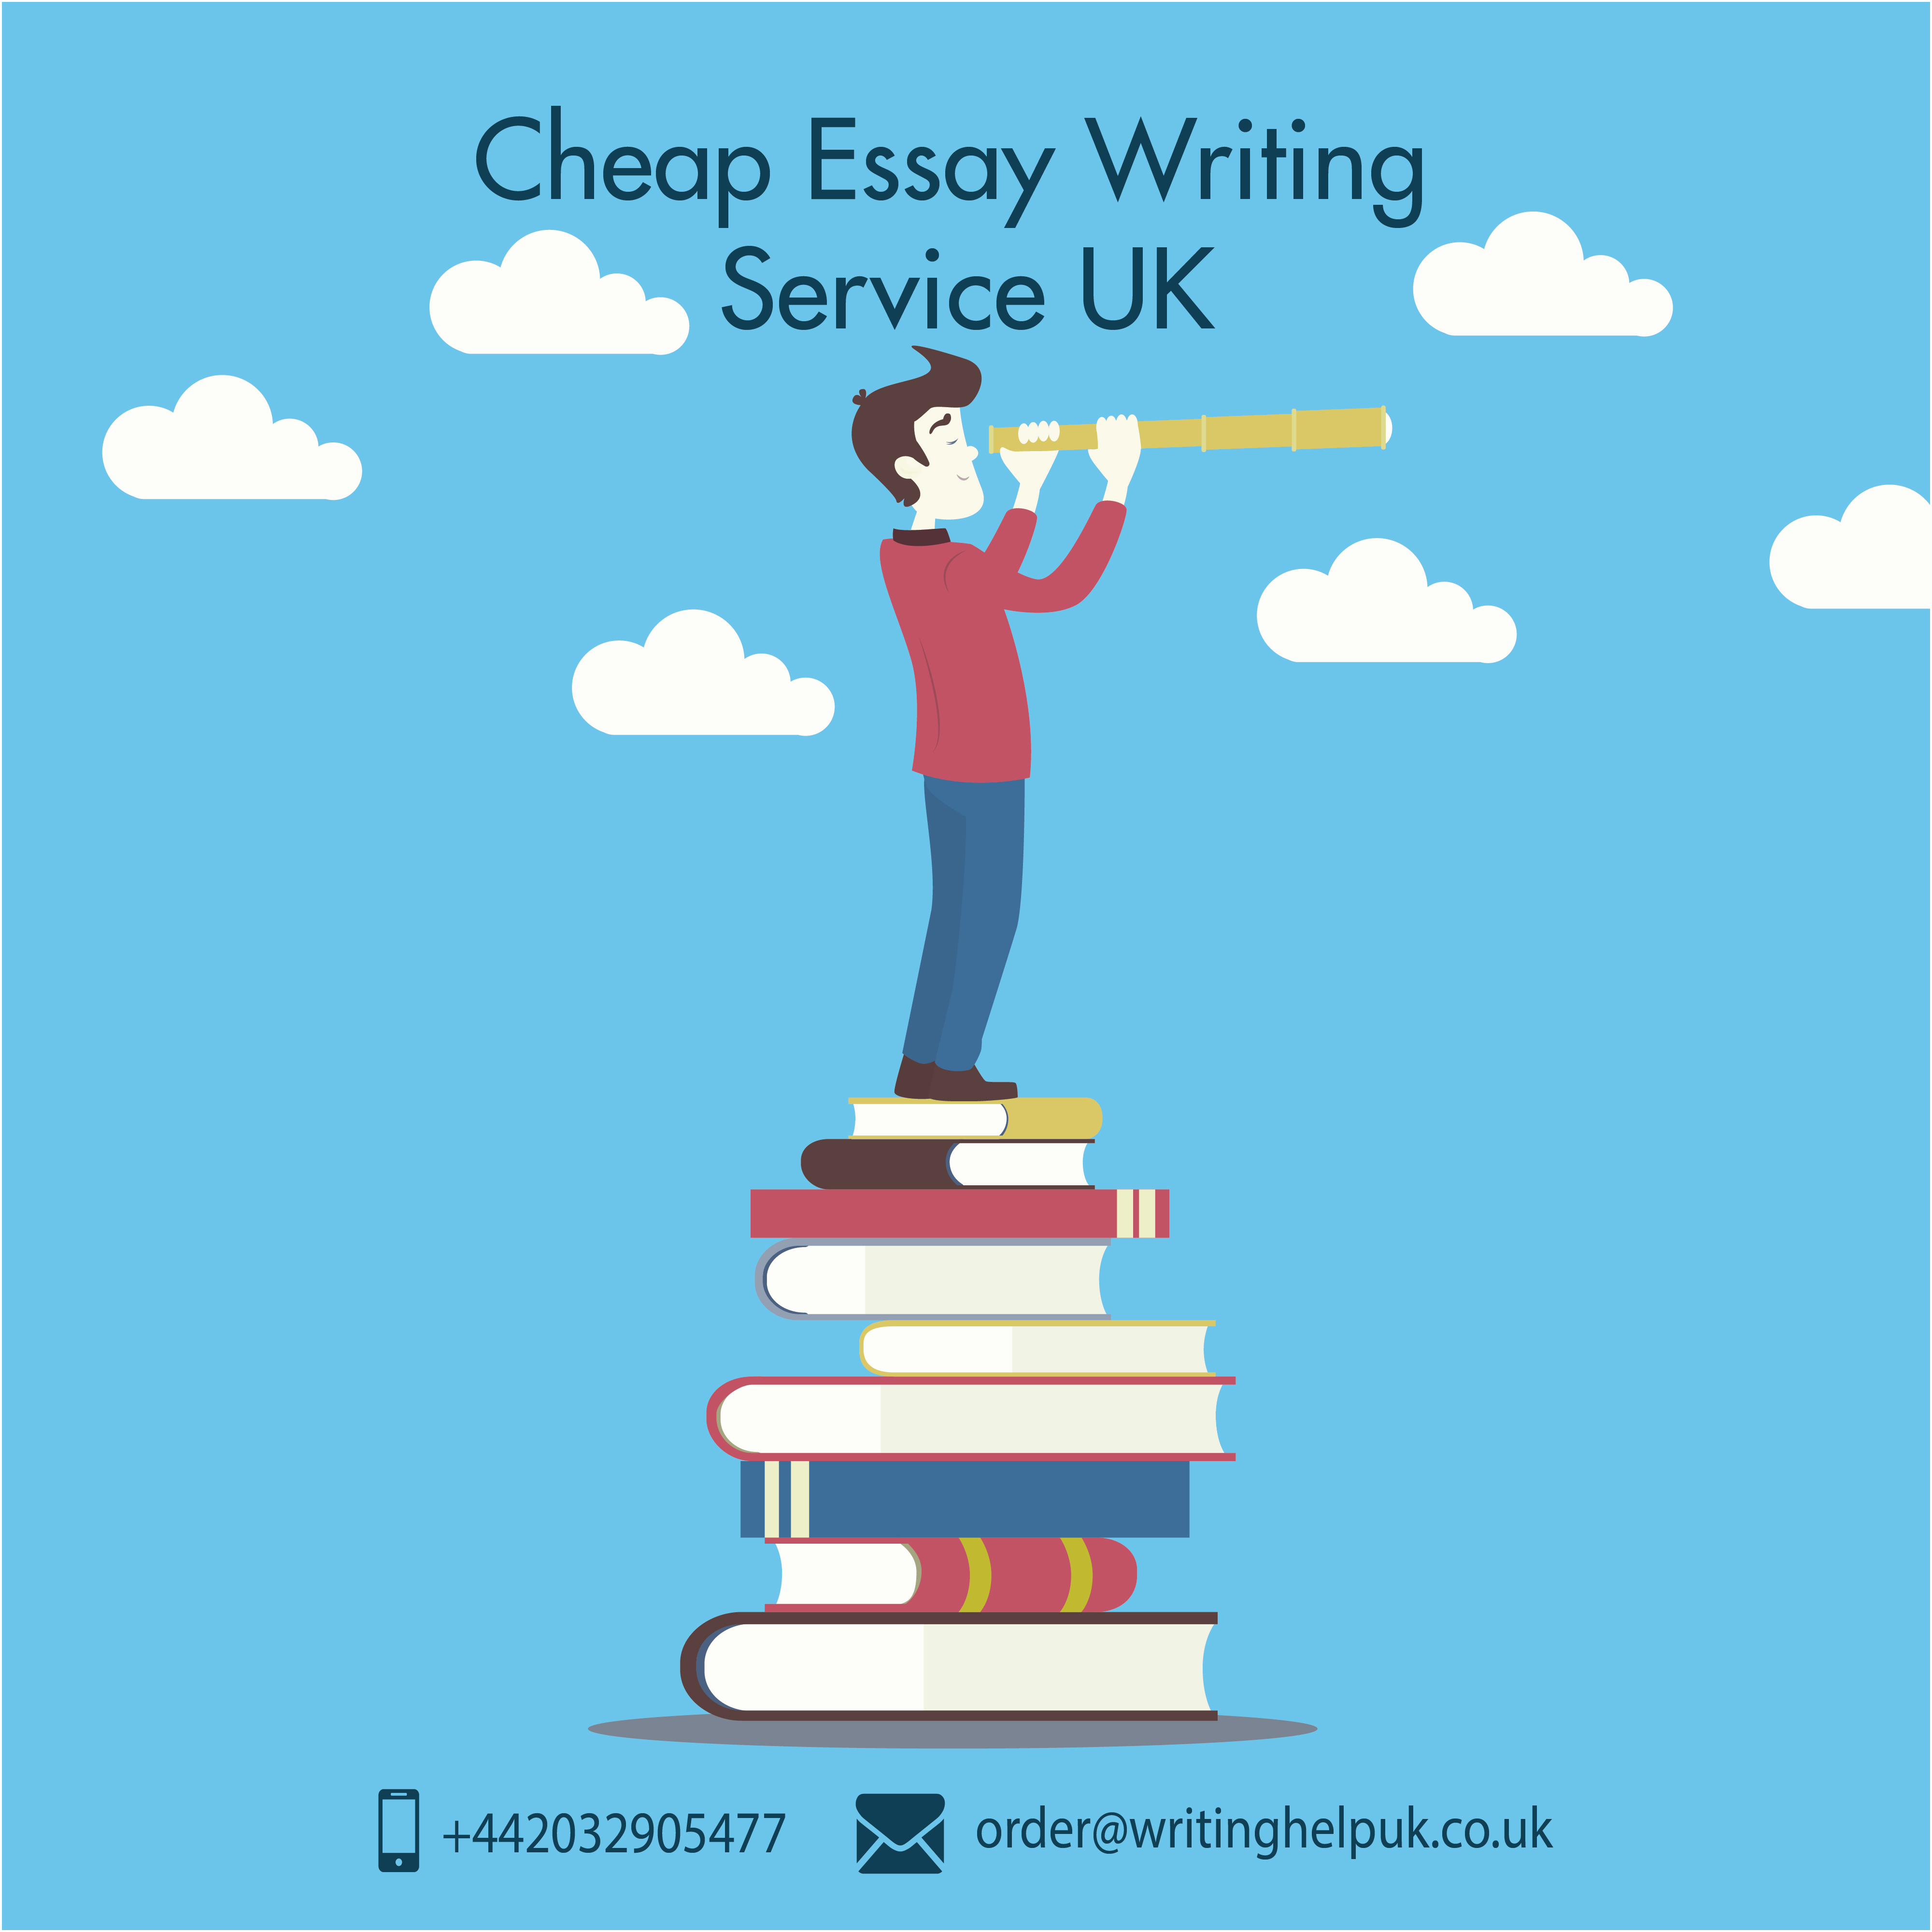 001 Essay Example Cheap Writing Service Uk Incredible Reviews Law Full